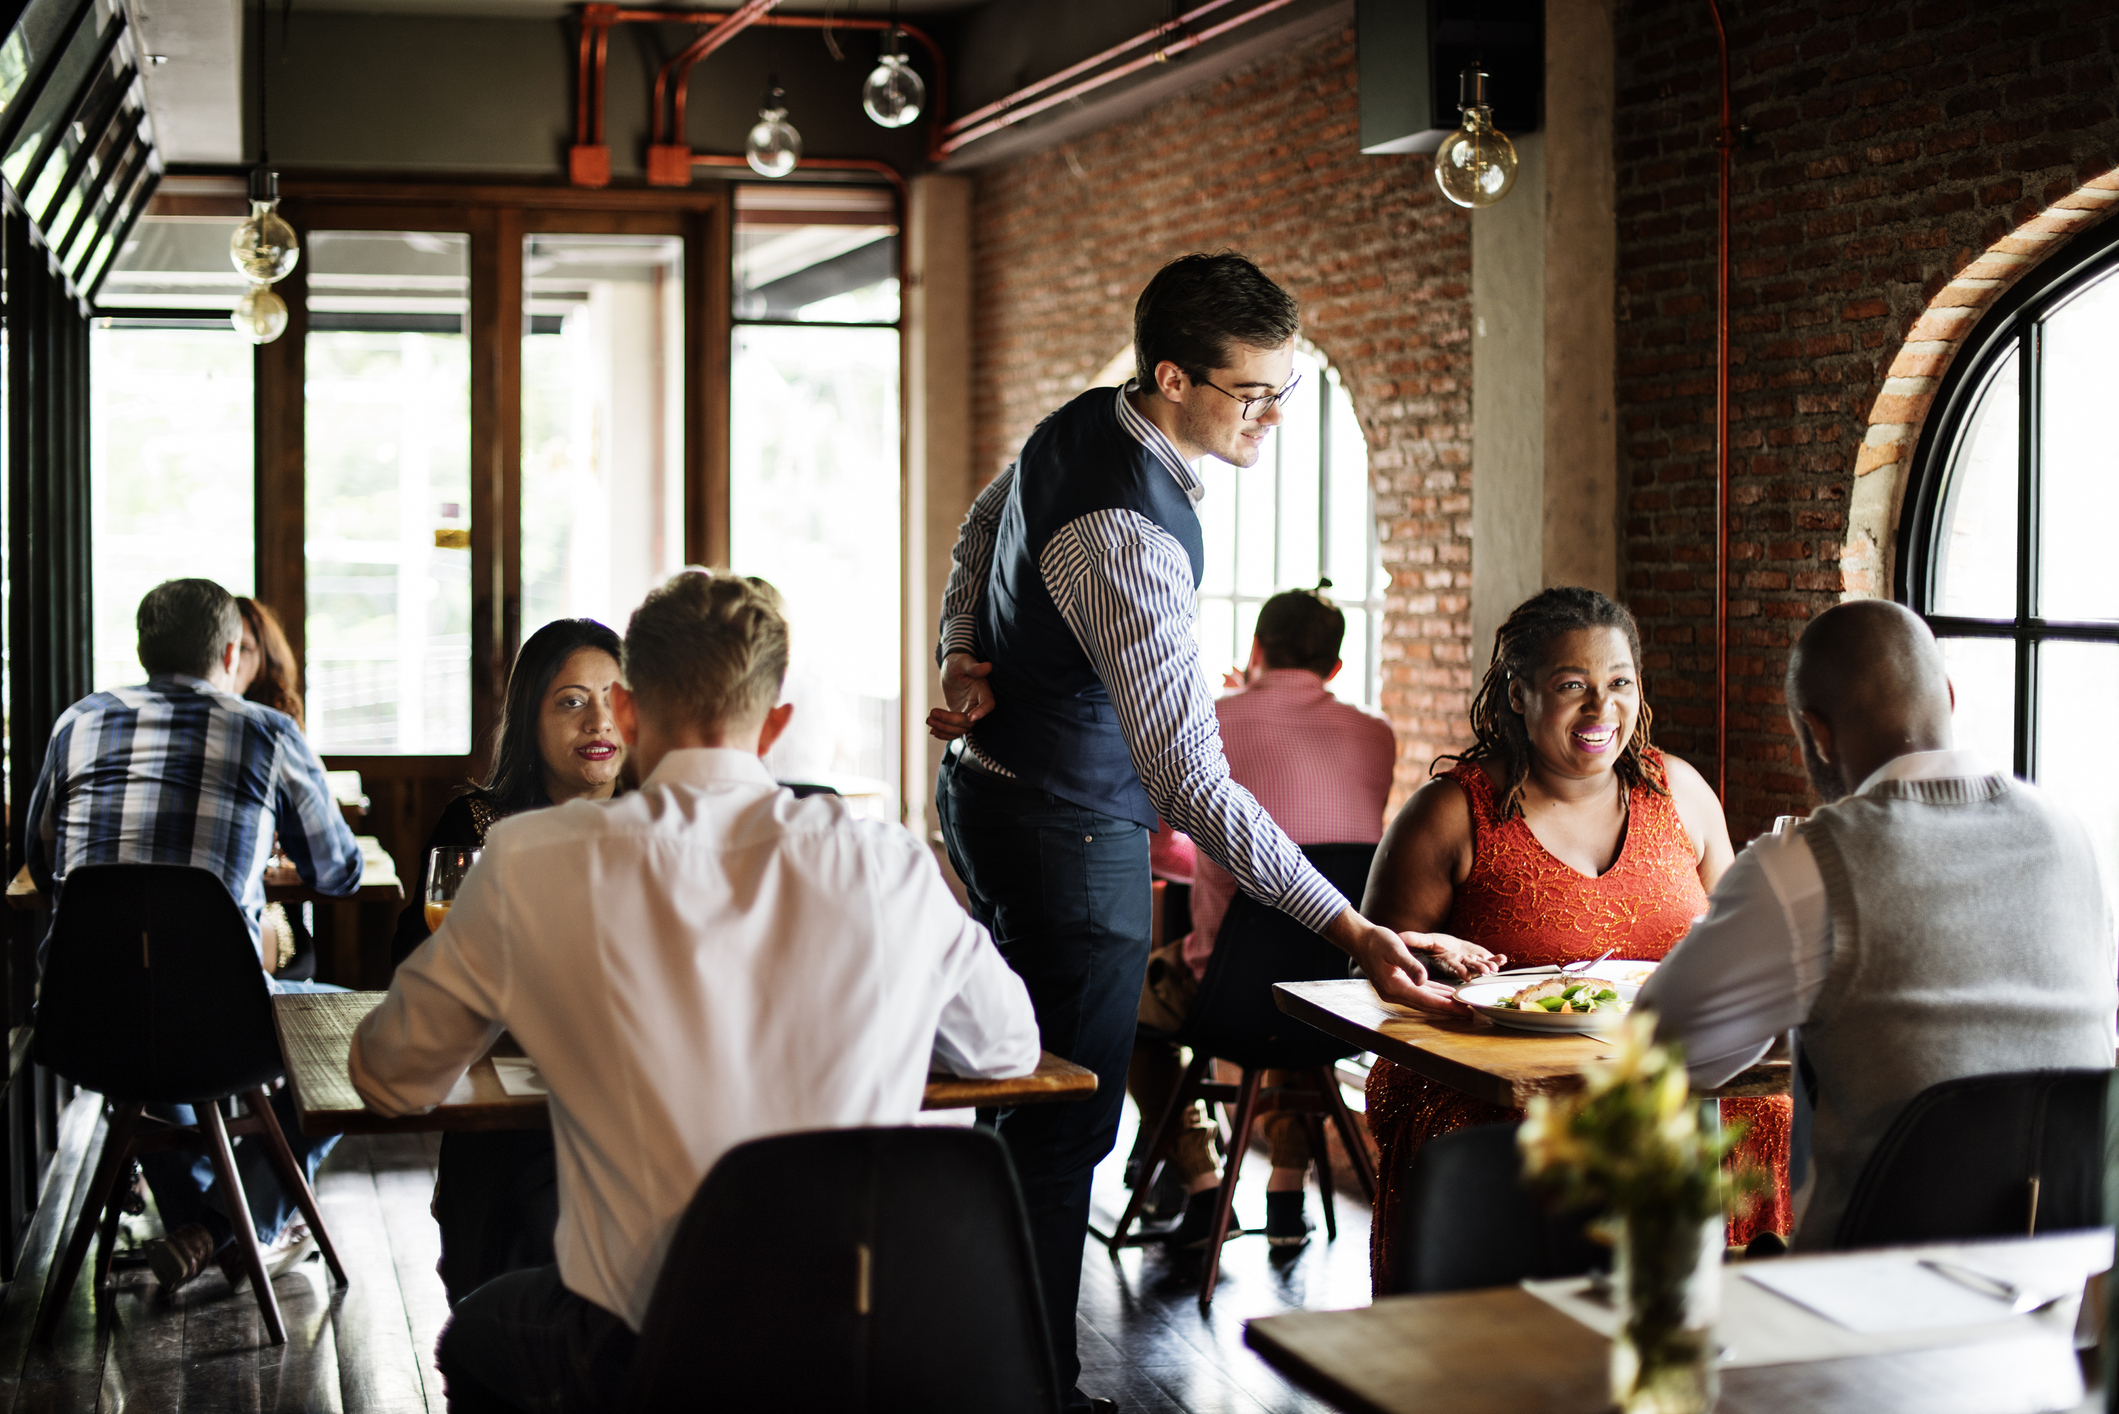 Restaurants You Won't Go To and Why